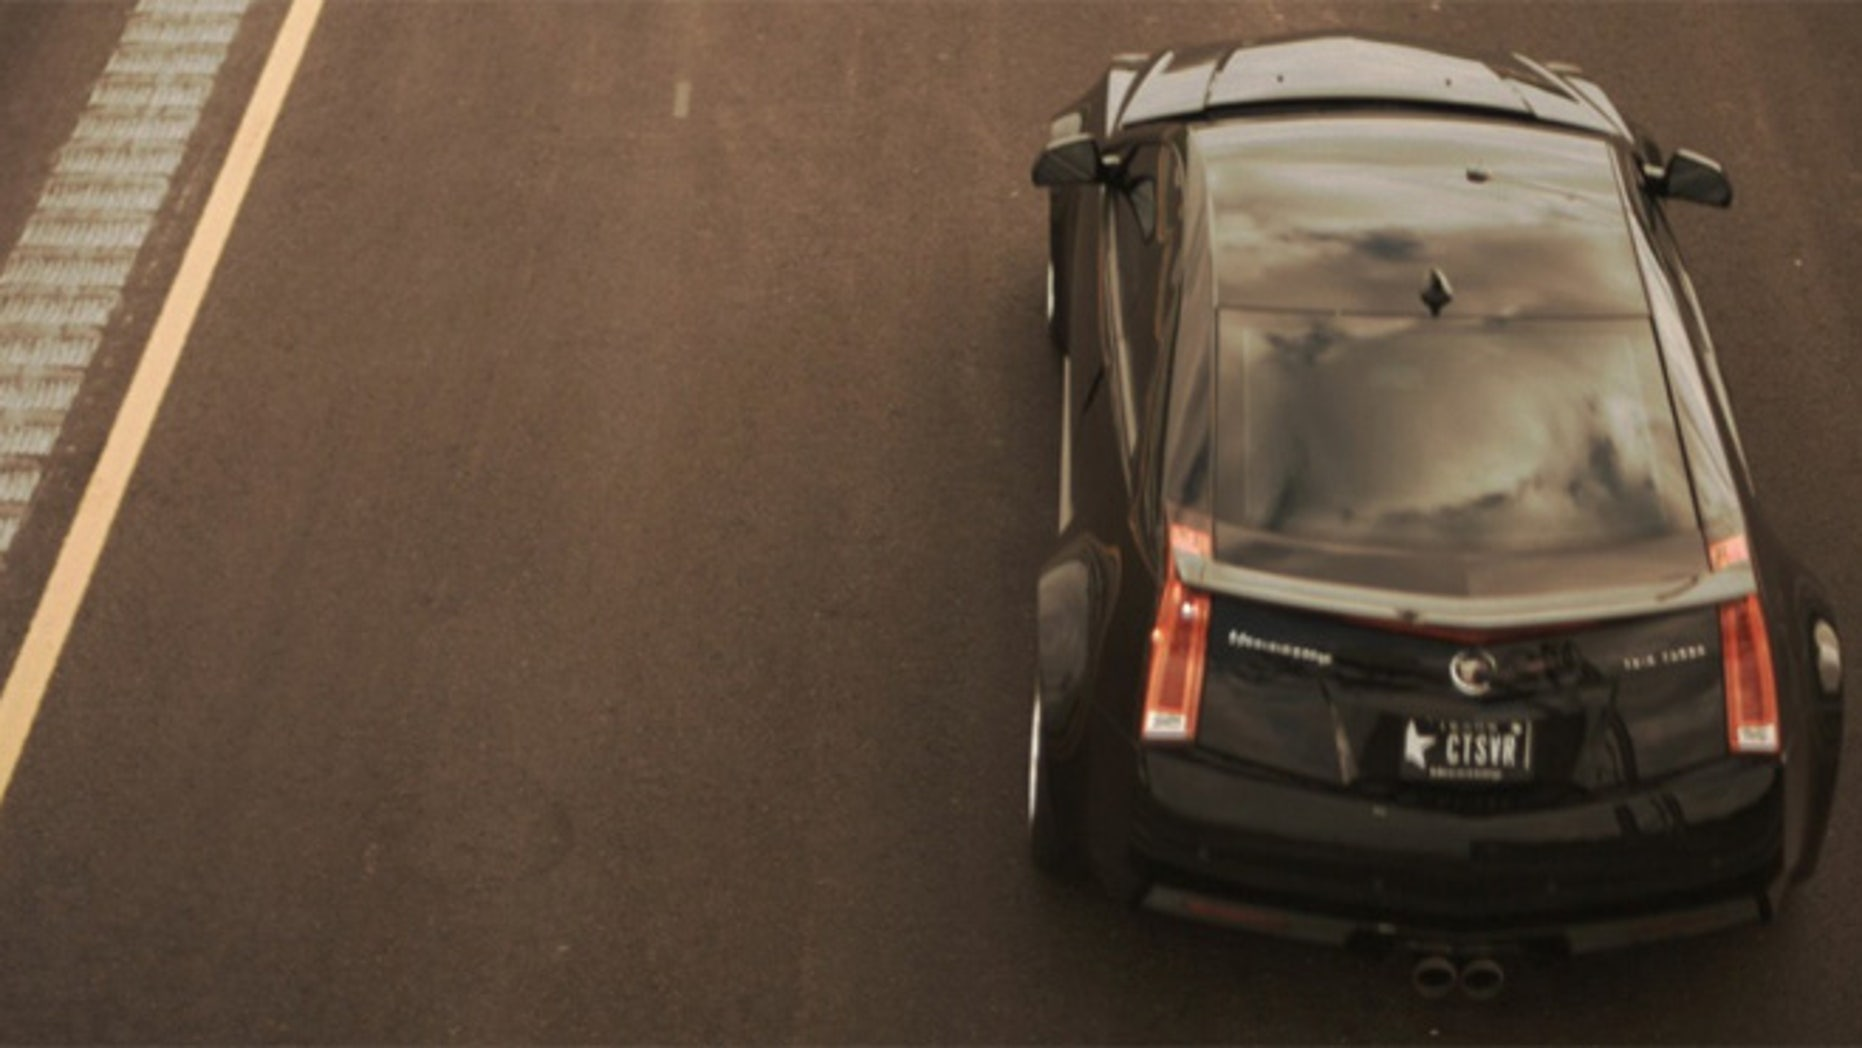 TxTag image of Hennessey Cadillac passing camera at over 180 mph.